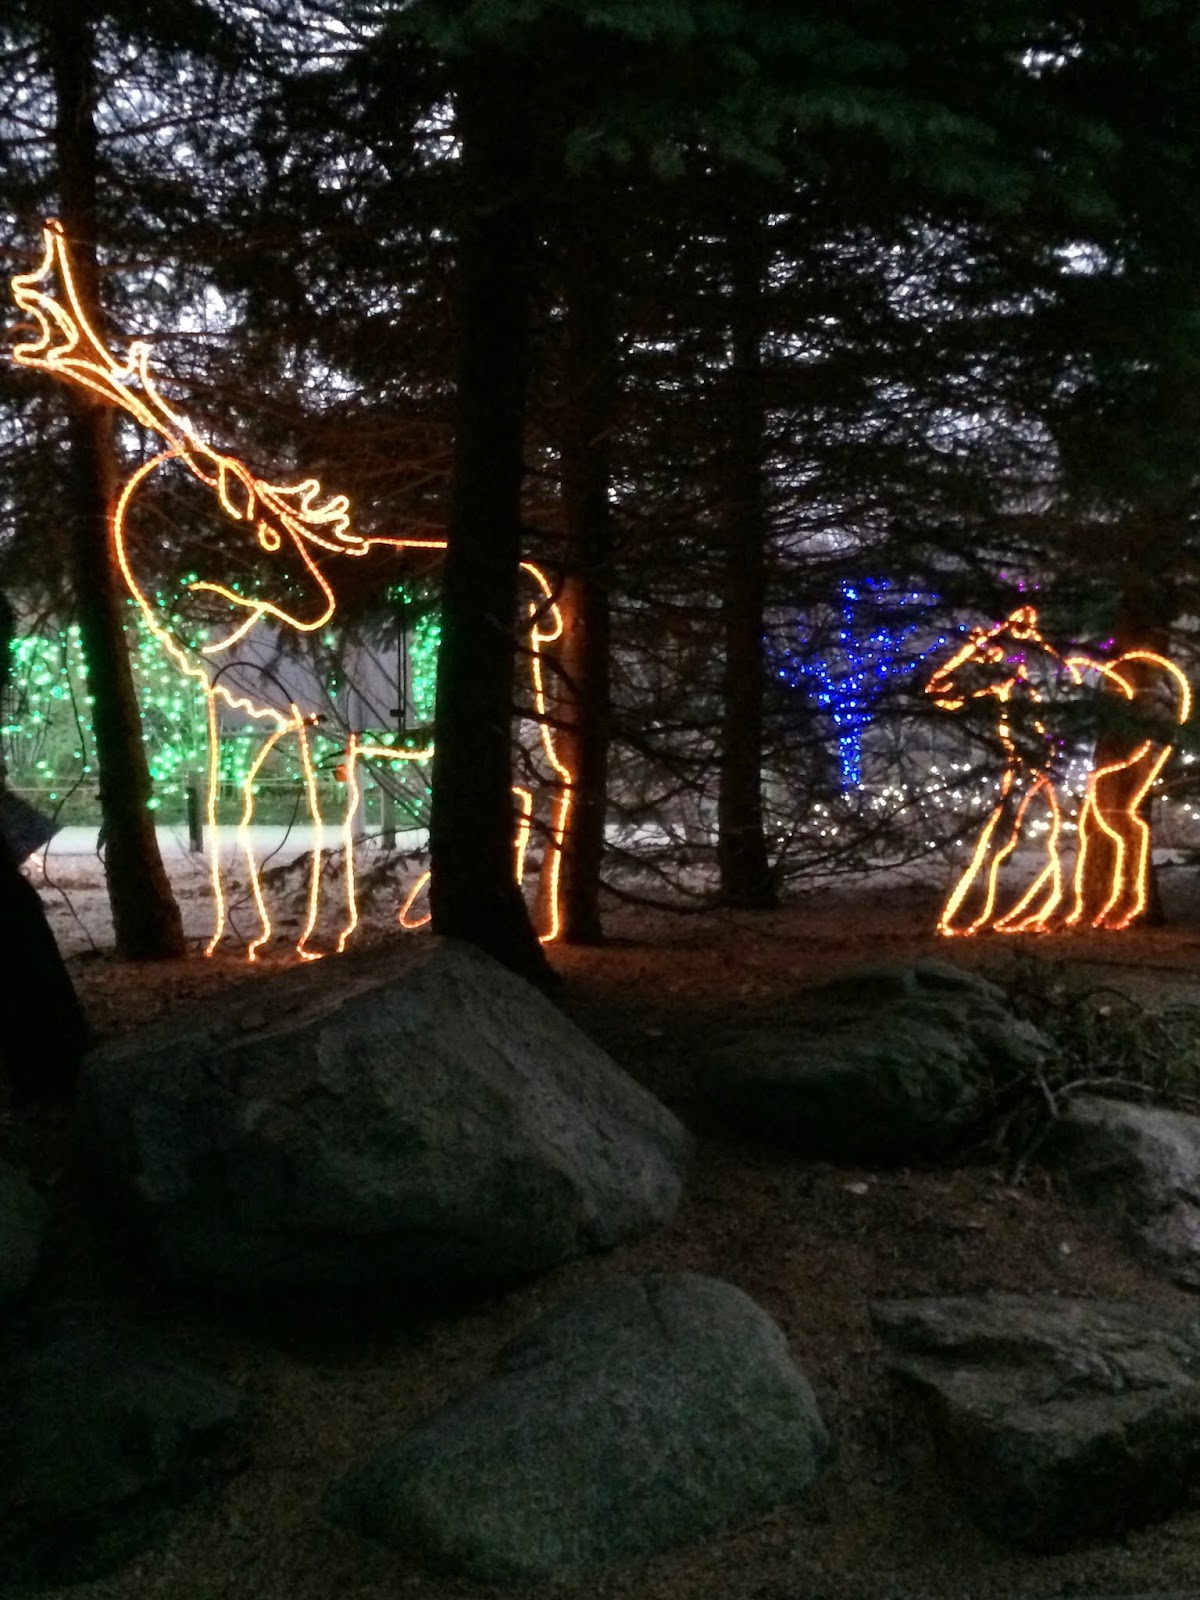 some of the highlights of the lights before christmas were a dancing light display that was set to energetic holiday tunes an ice slide and checking out - Lights Before Christmas Toledo Zoo